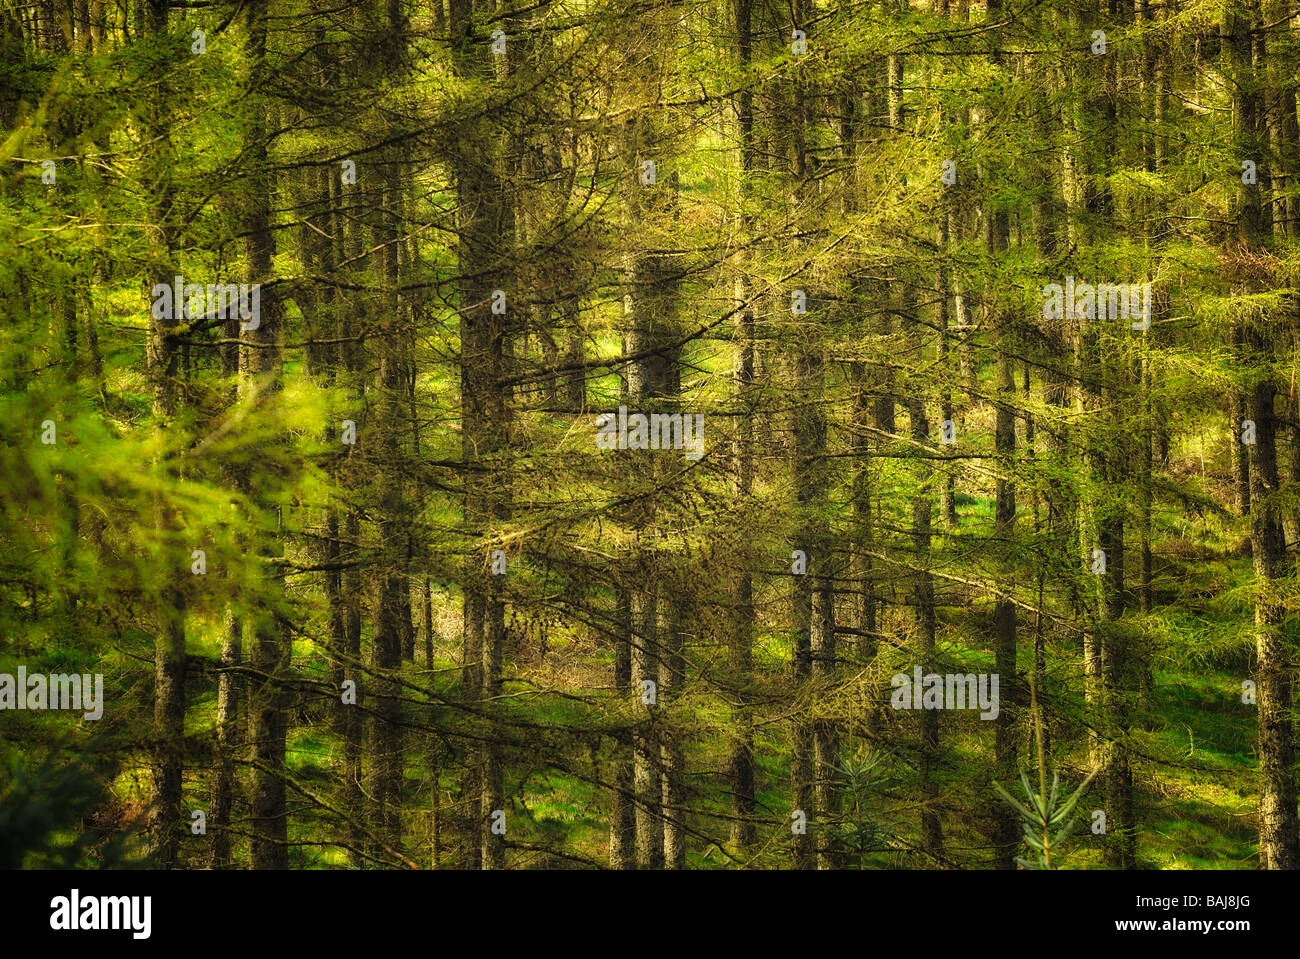 Forest at Devil's Bridge - Stock Image